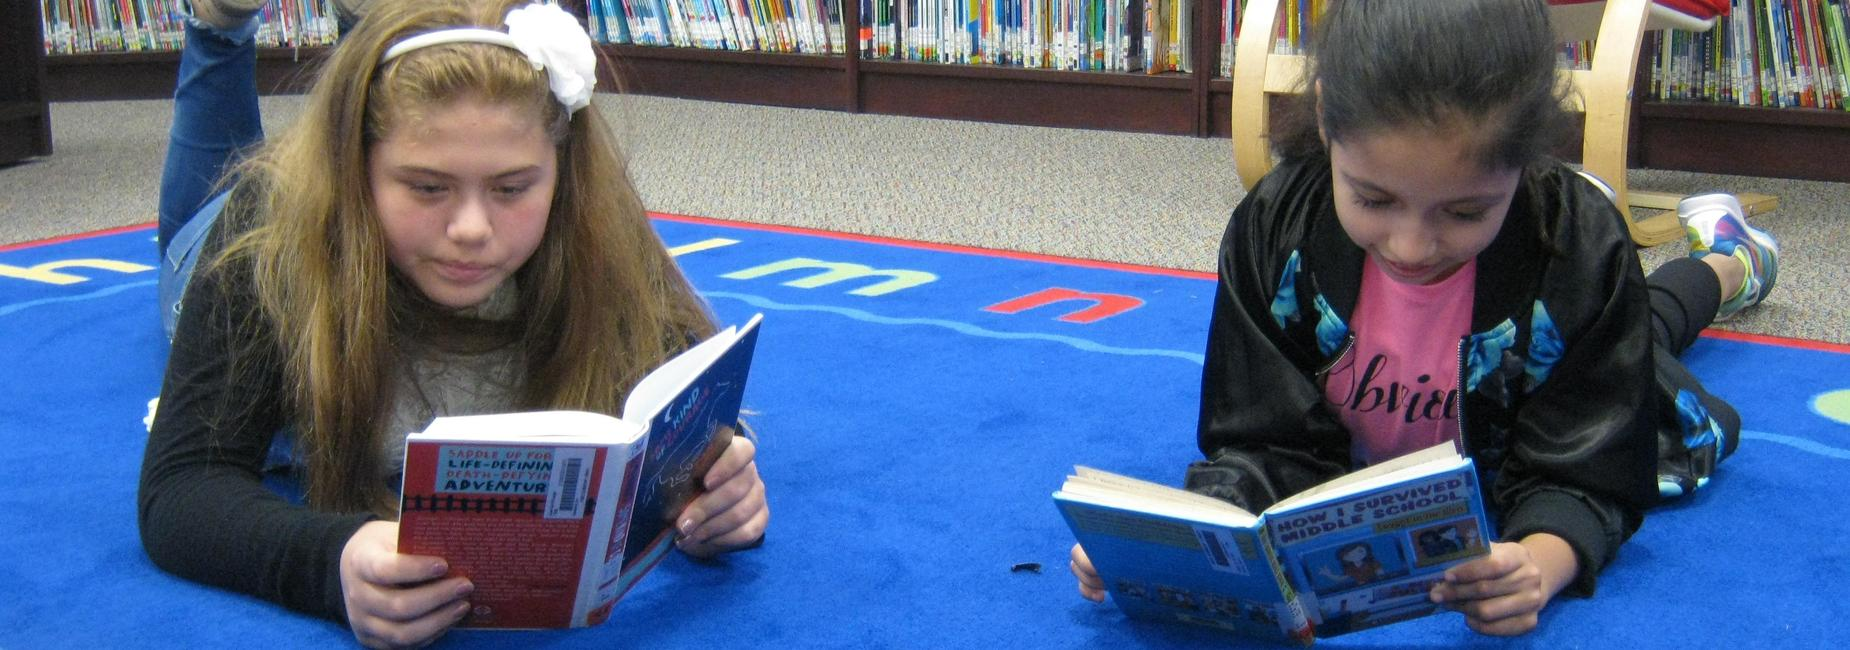 Students lay on the library carpet and read.